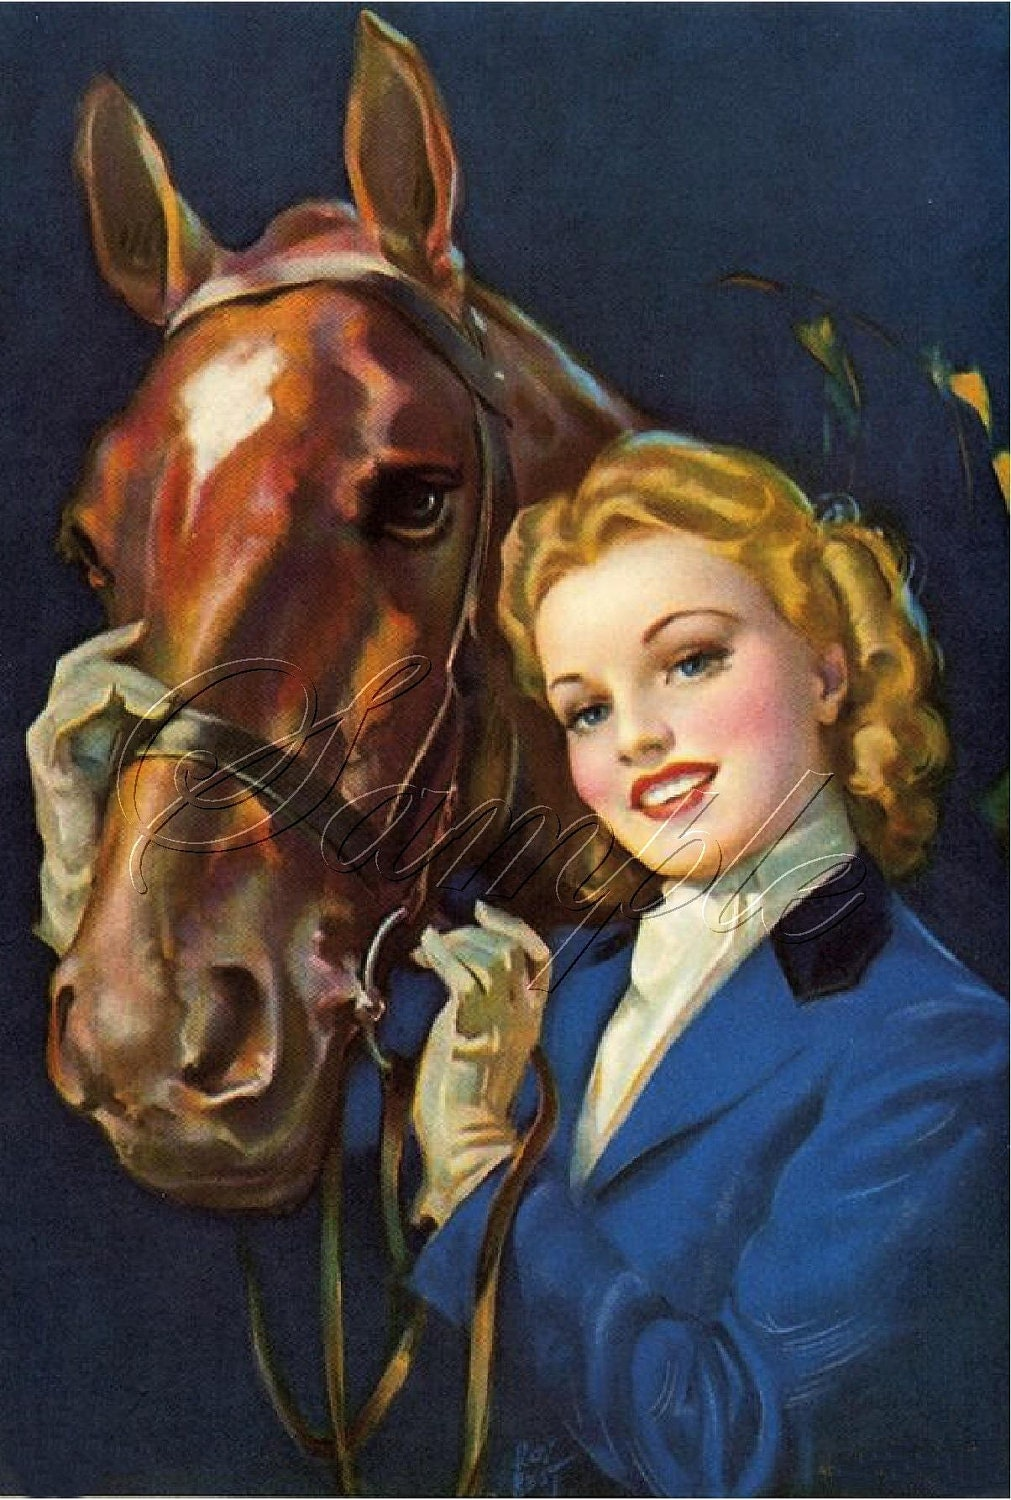 Vintage Equestrian Horse Pin Up Calendar Girl English Riding